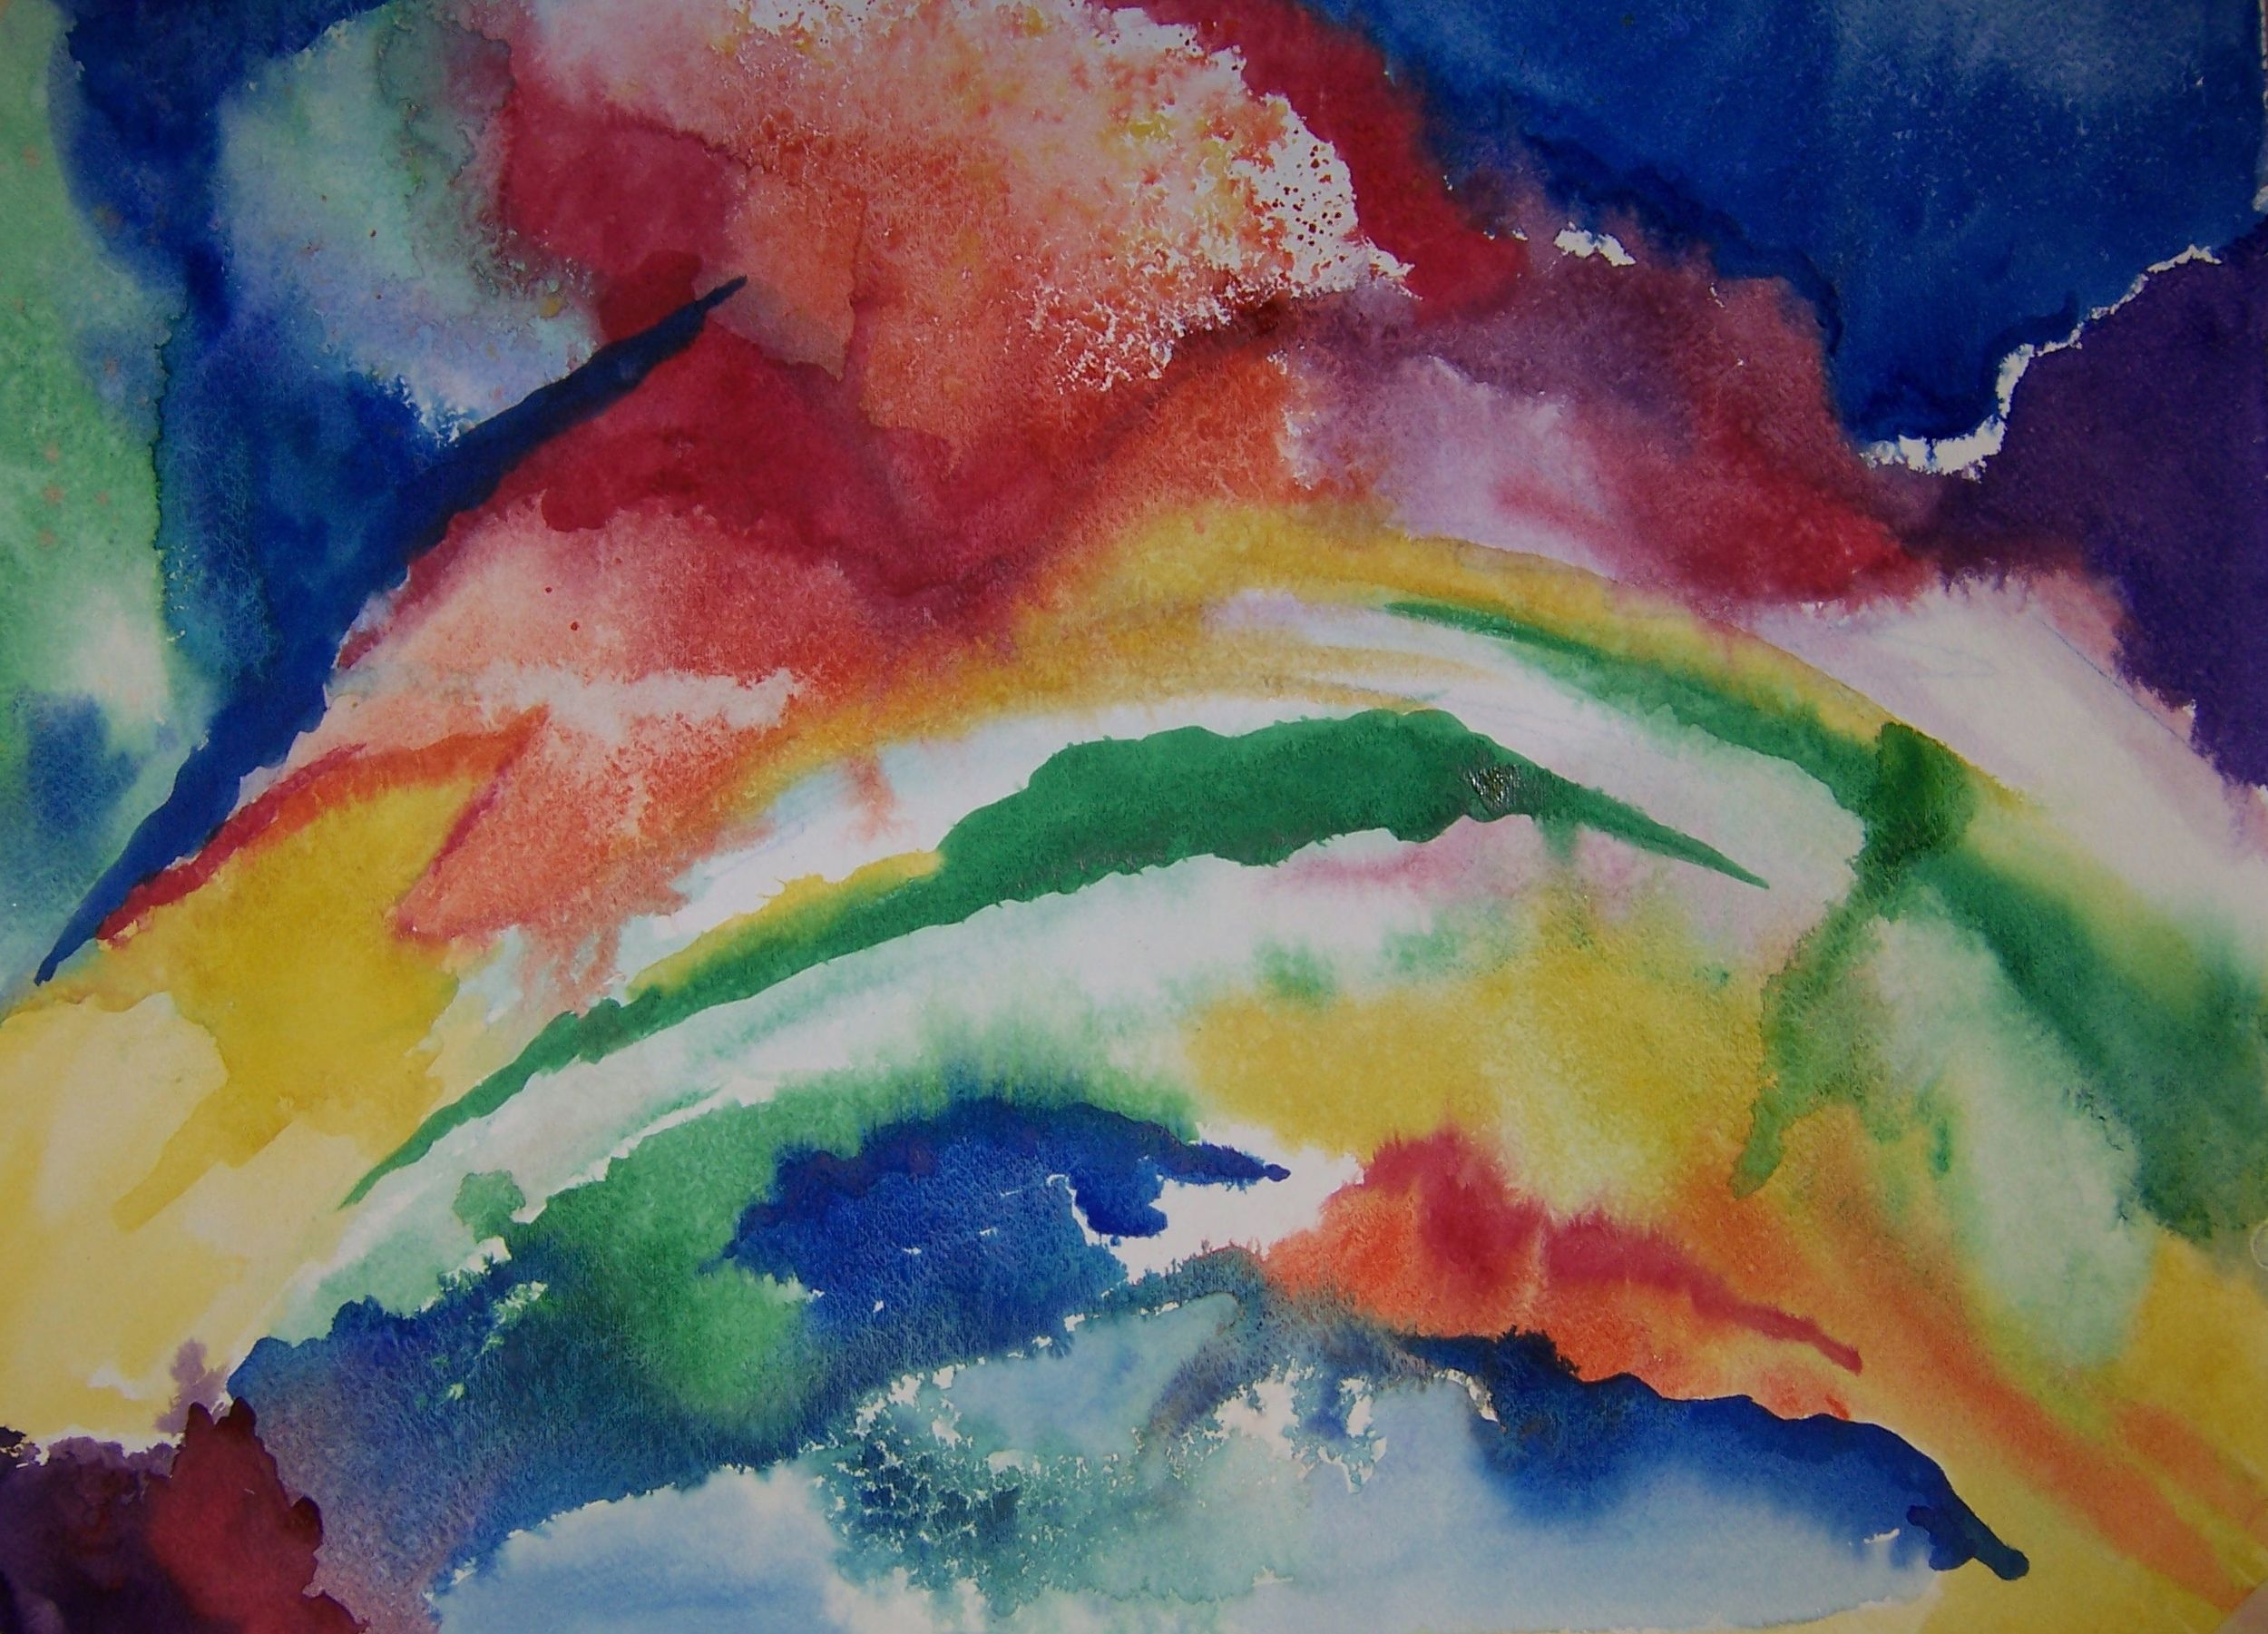 Abstract watercolor painting bing images for How to paint abstract with watercolors